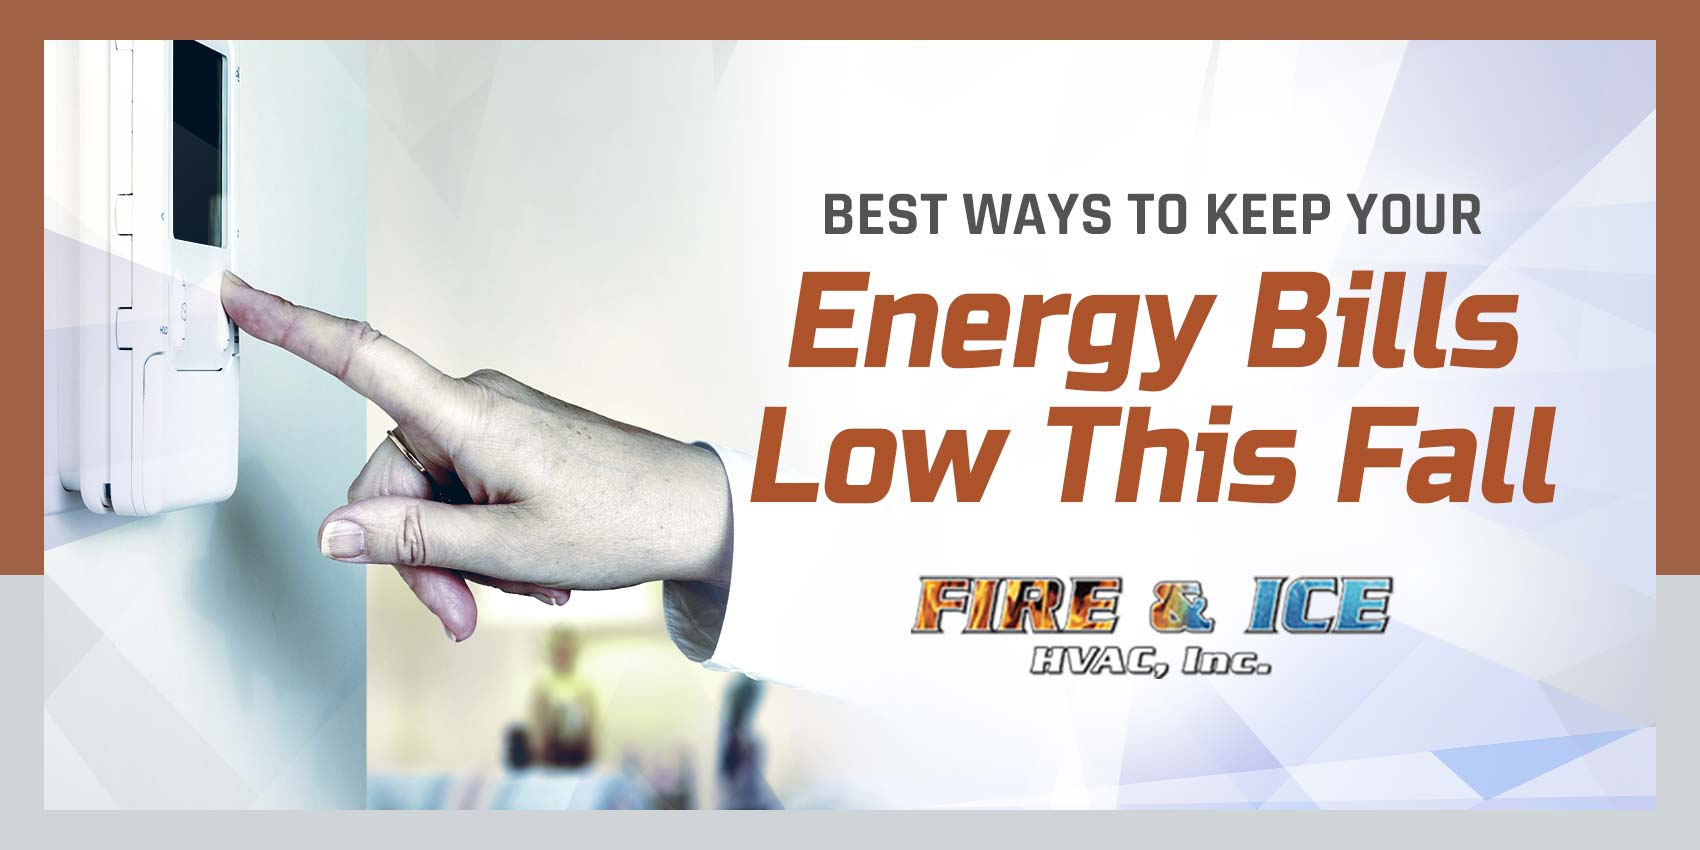 Best Ways to Keep Your Energy Bills Low This Fall